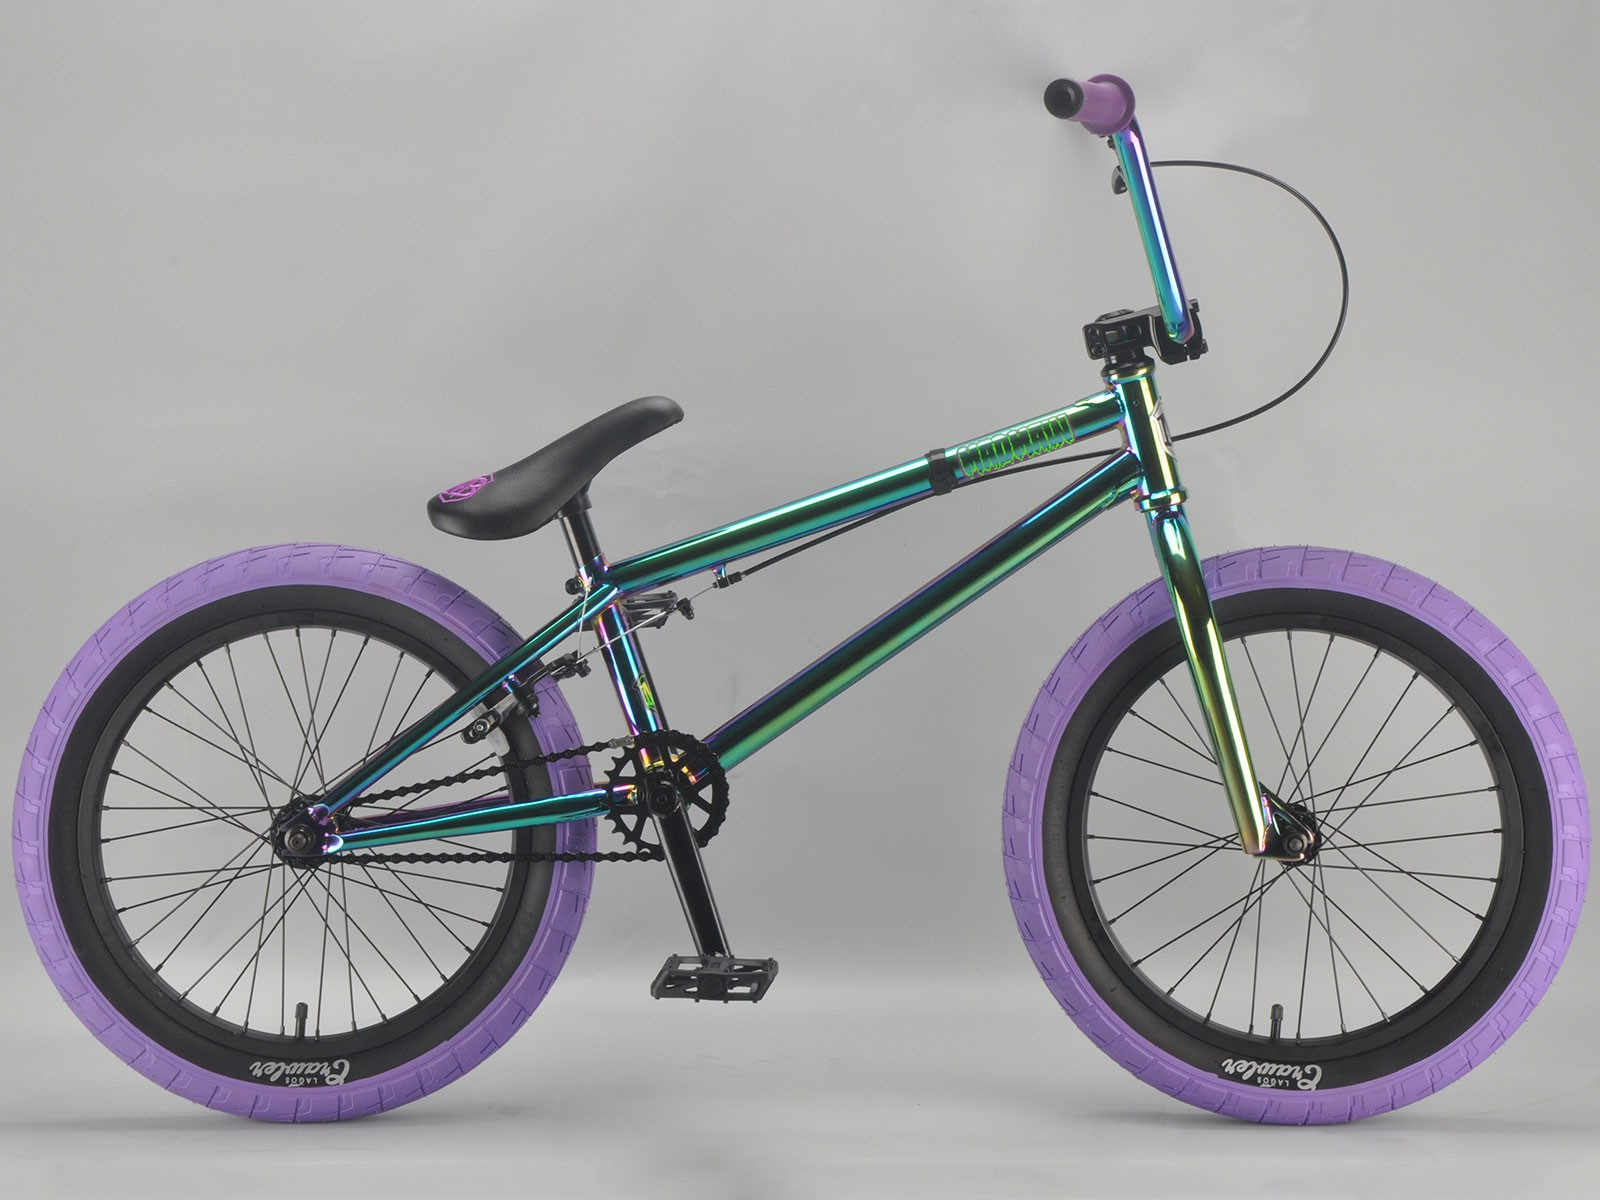 18 in mafiabikes bmx bike madmain diff rentes instances de. Black Bedroom Furniture Sets. Home Design Ideas